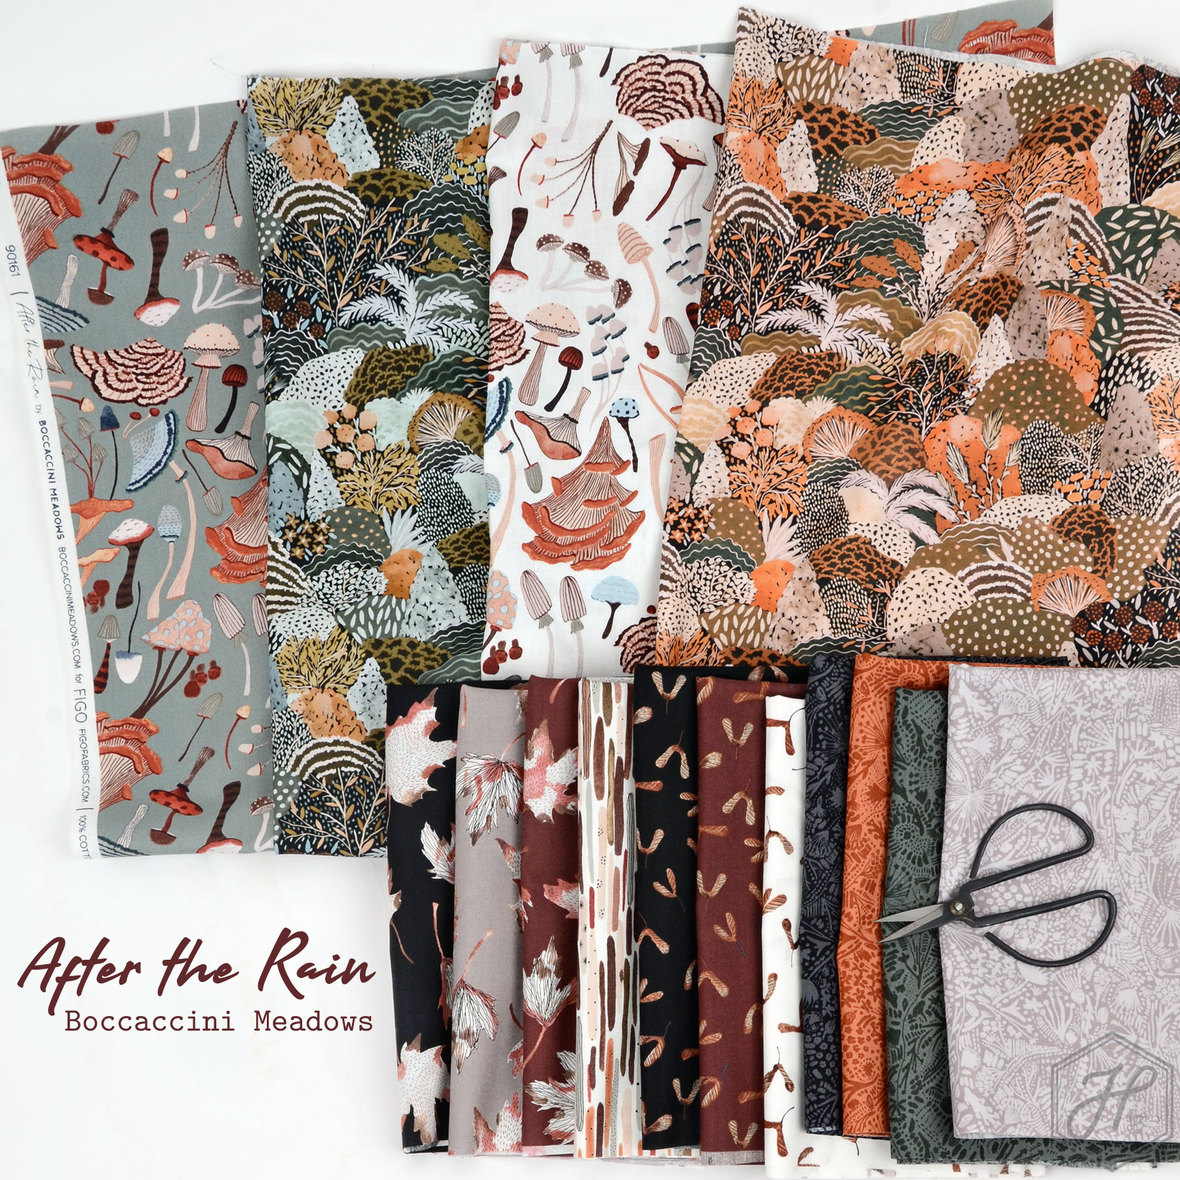 After-the-Rain-Fabric-Boccaccini-Meadows-for-Figo-at-Hawthorne-Supply-Co